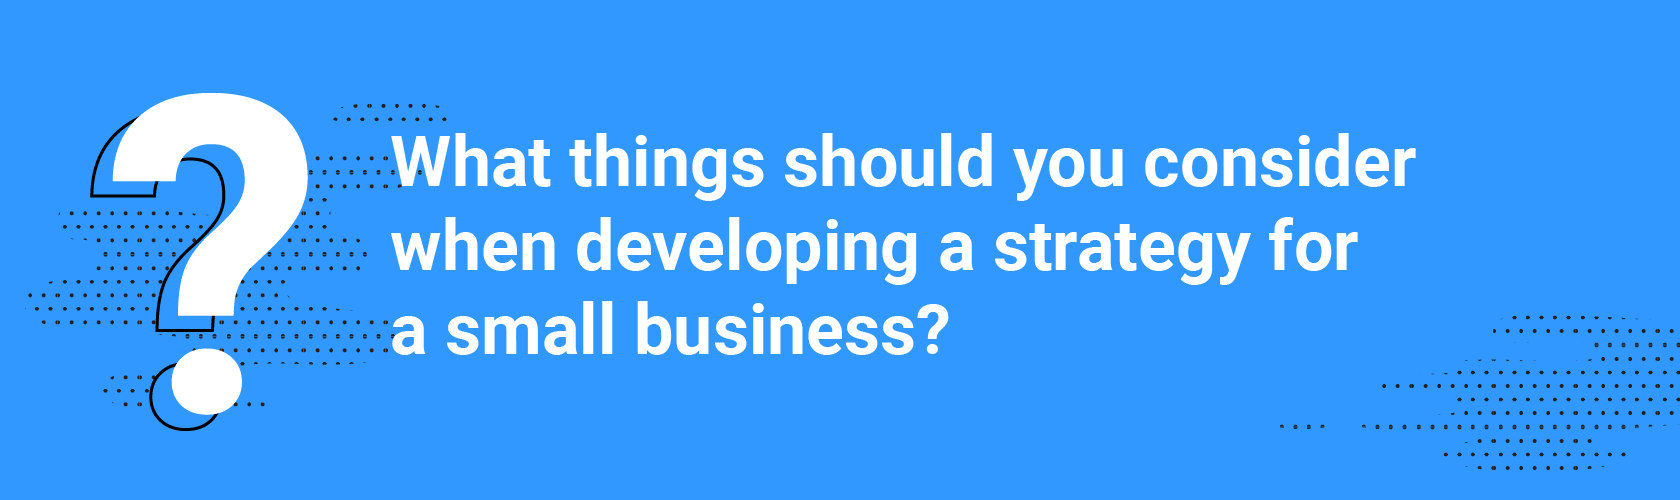 What things should you consider when developing a strategy for a small business?